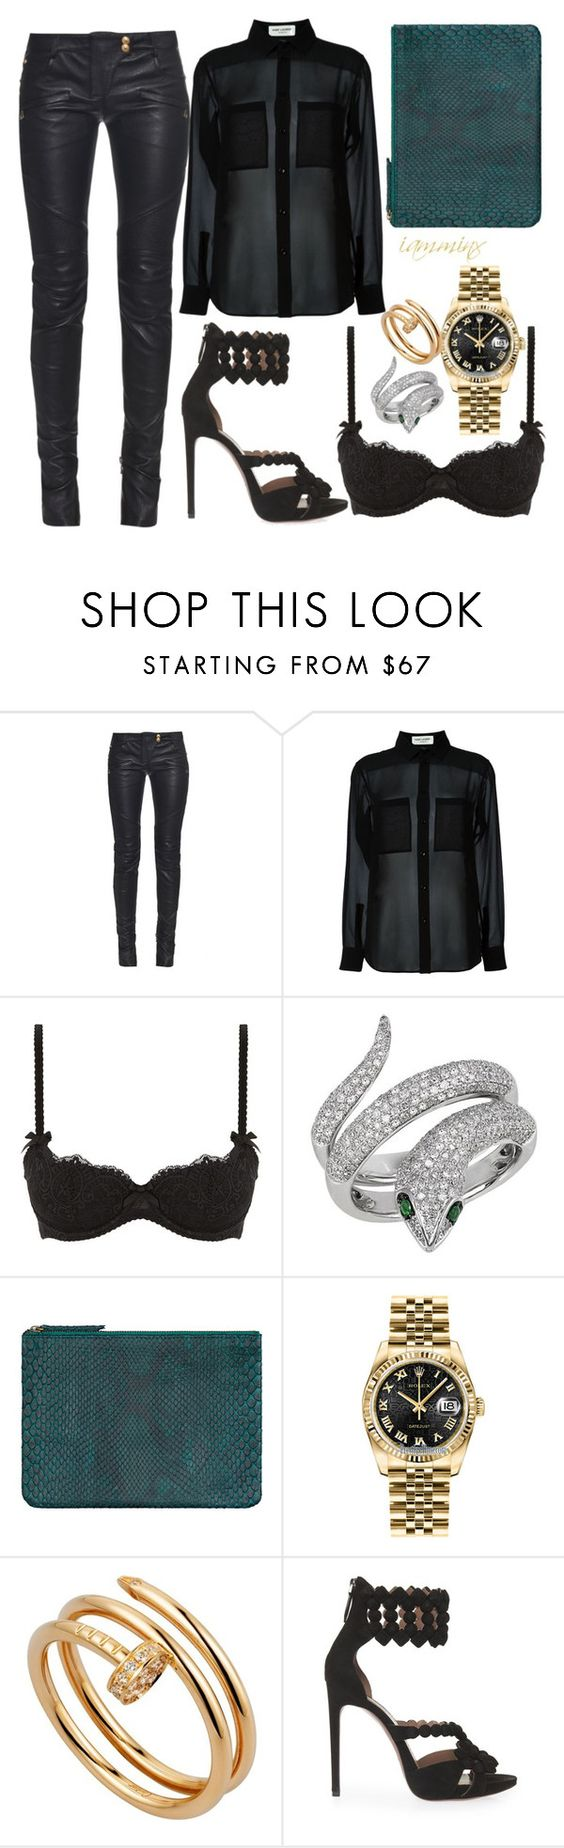 """""""Sheer"""" by iamminx ❤ liked on Polyvore featuring Balmain, Yves Saint Laurent, L'Agent By Agent Provocateur, Effy Jewelry, Rolex, Cartier and Alaïa"""